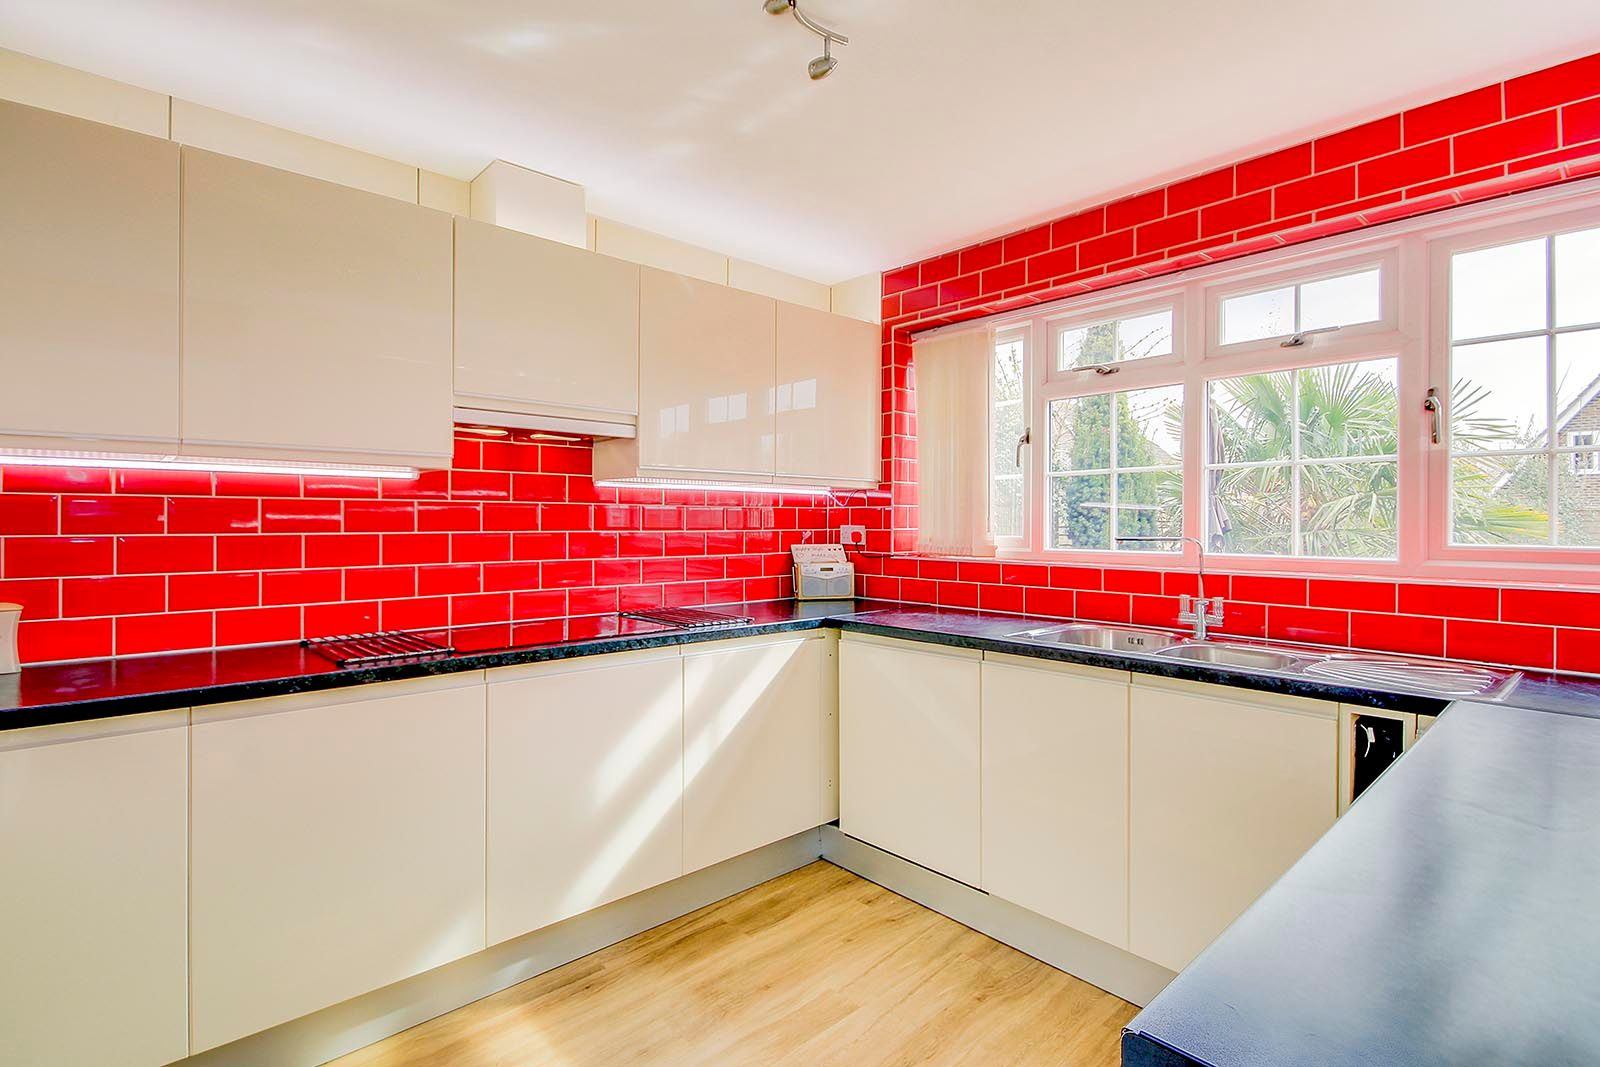 3 bed house for sale in Woodlands Close (COMP AUG 19)  - Property Image 5